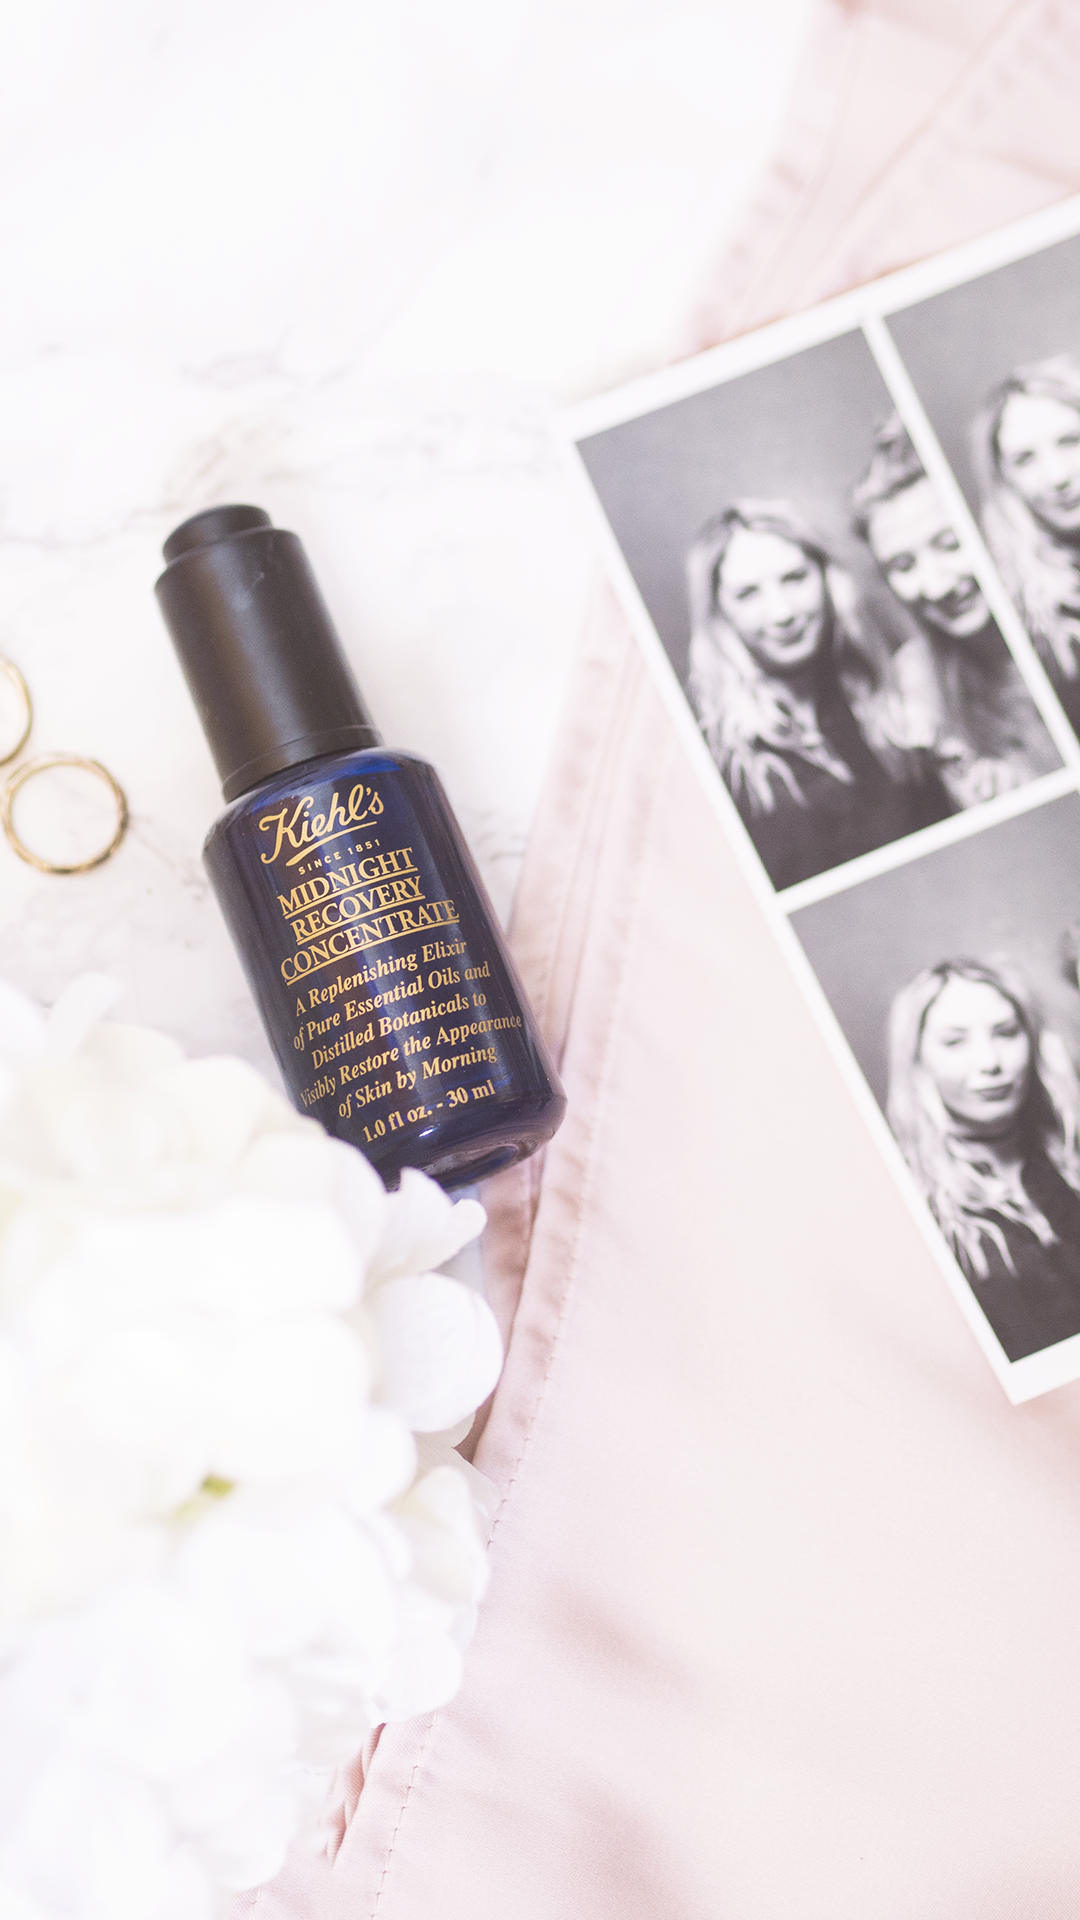 The September Favourites Kiehl's Midnight Recovery Concentrate